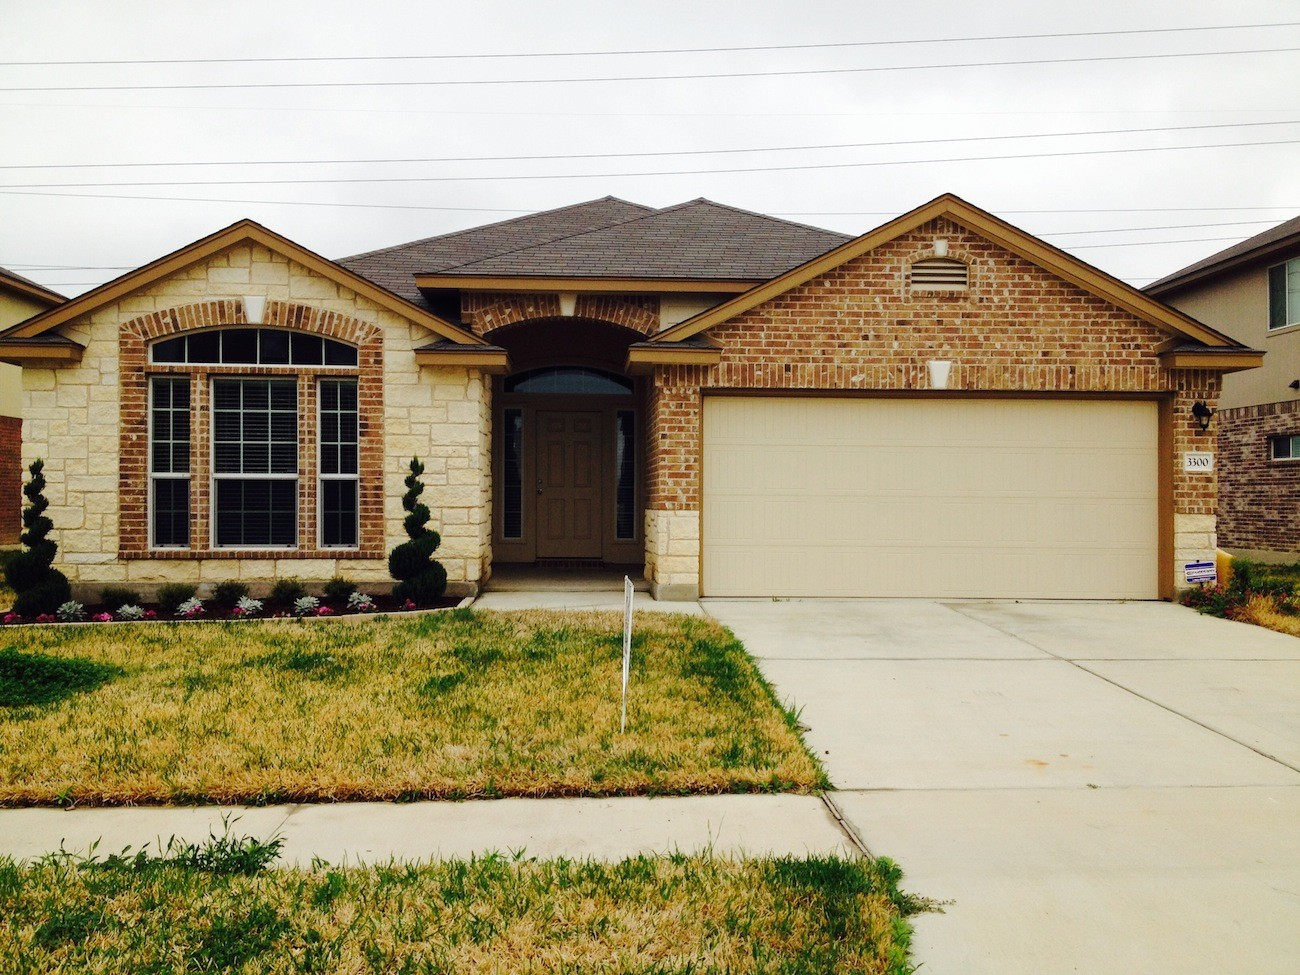 3300 Cricklewood Drive Killeen Tx 76542 4 Bedroom Apartment For Rent For 1 250 Month Zumper